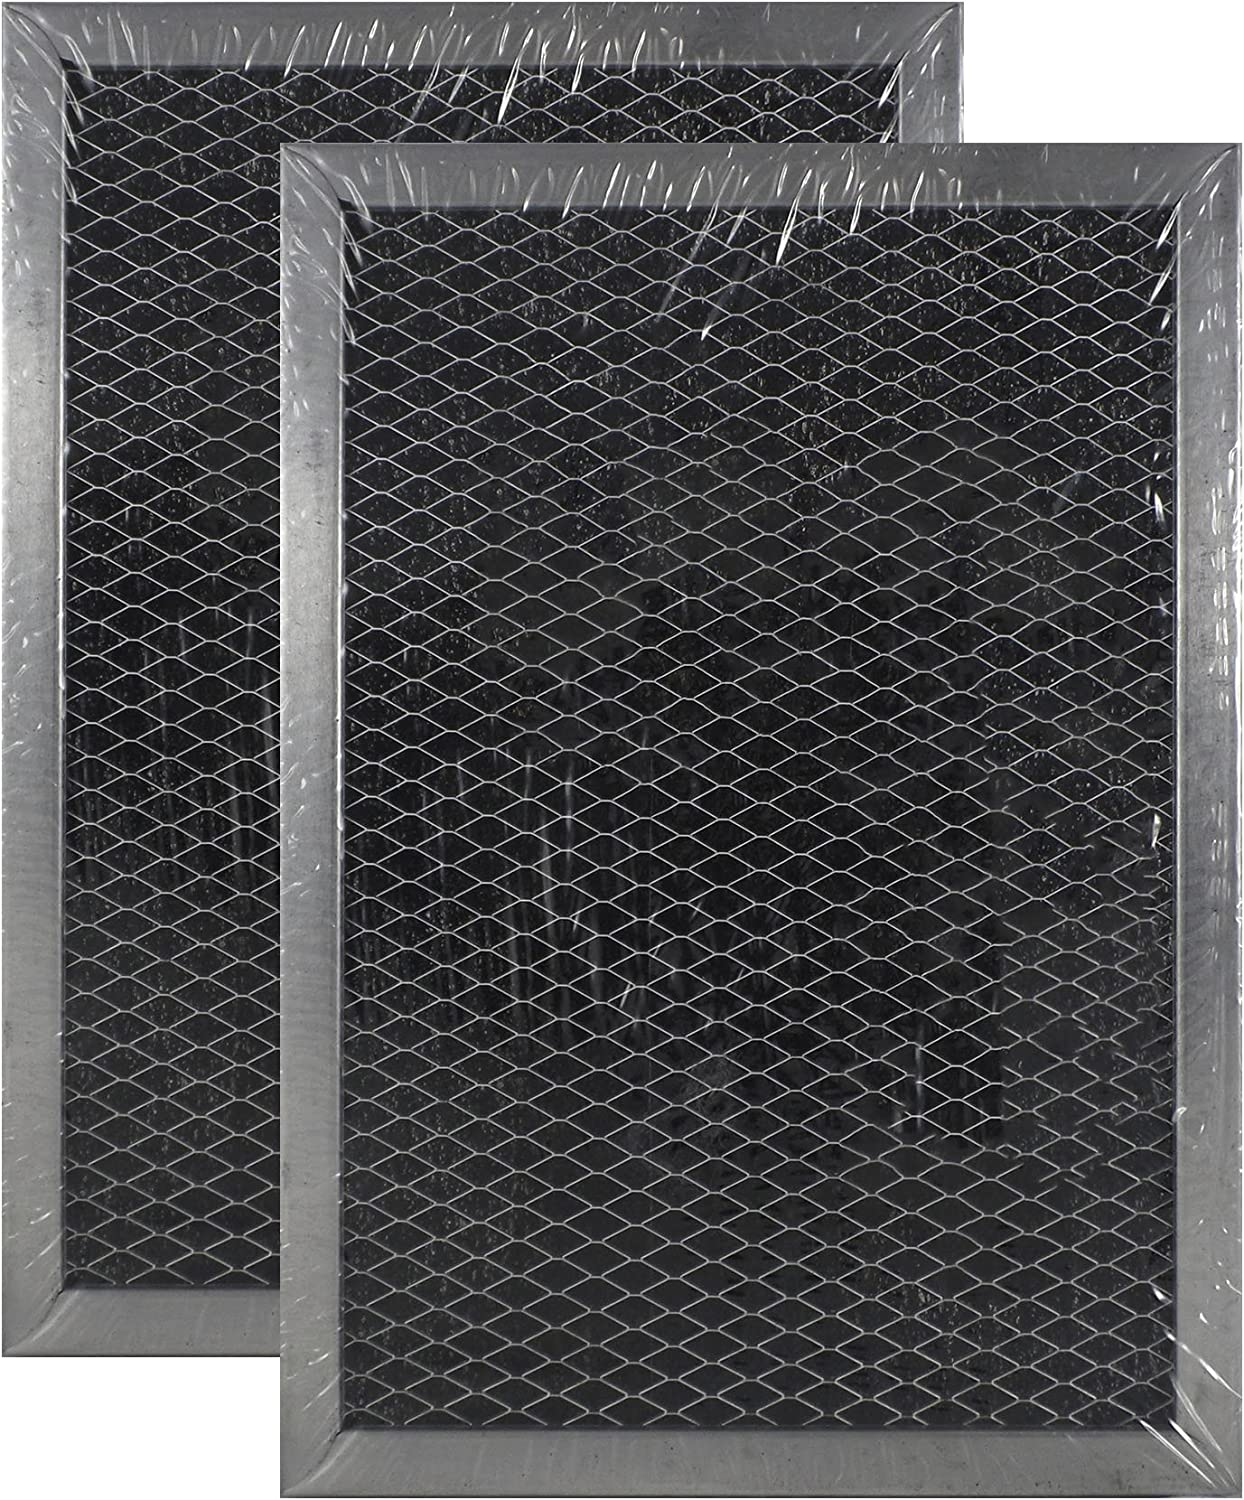 2 PACK Air Filter Factory Compatible Replacement For GE WB02X10733 JX81B Microwave Charcoal Carbon Filter